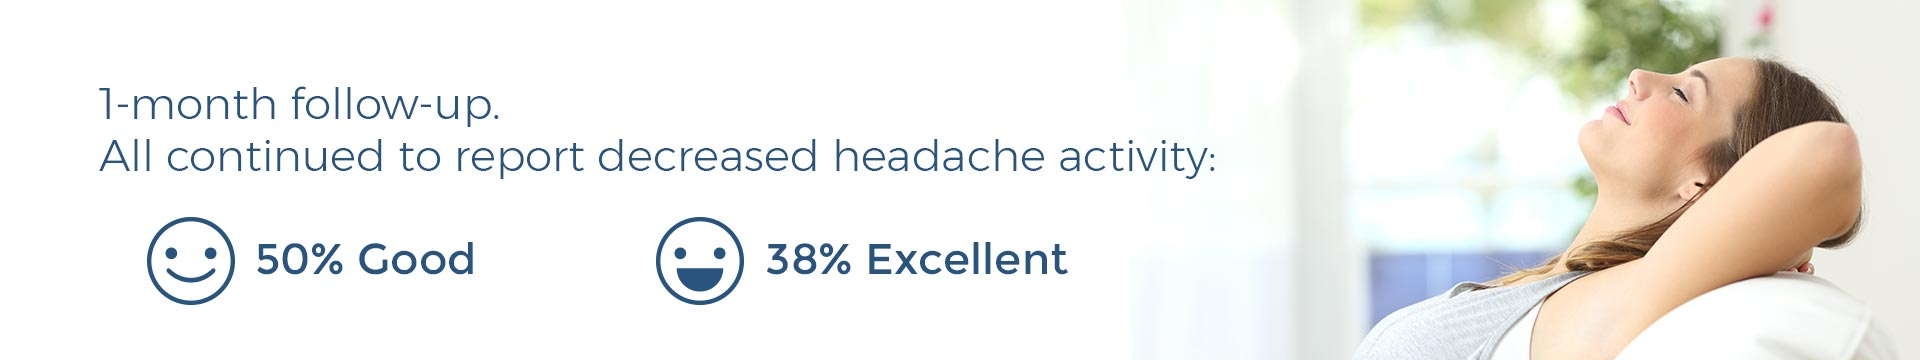 1-month follow-up. All continued to report decreased headache activity: 50% Good, 38% Excellent